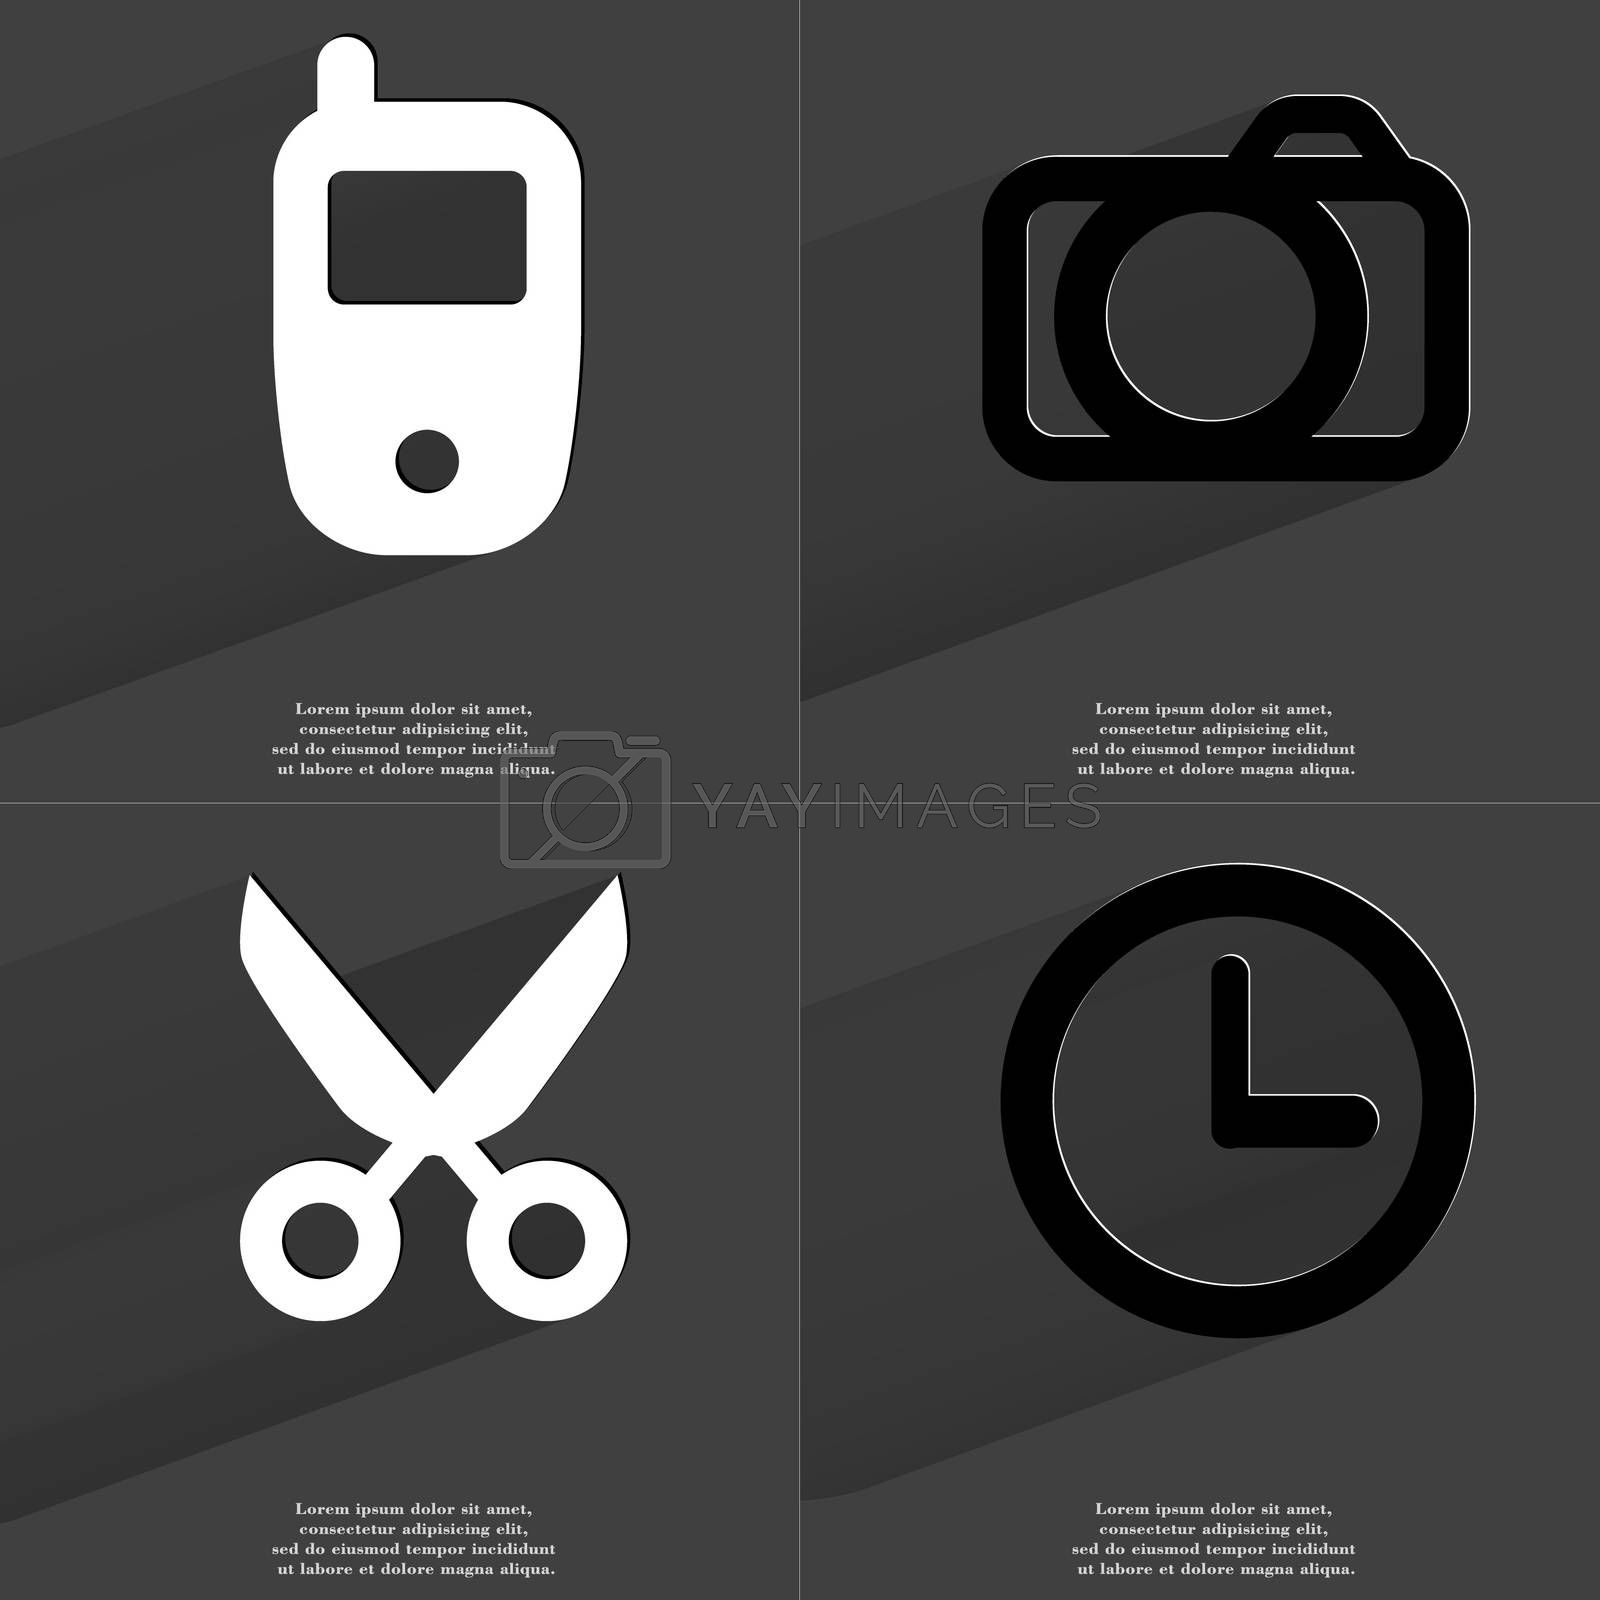 Royalty free image of Mobile phone, Camera, Scissors, Clock. Symbols with long shadow. Flat design by serhii_lohvyniuk